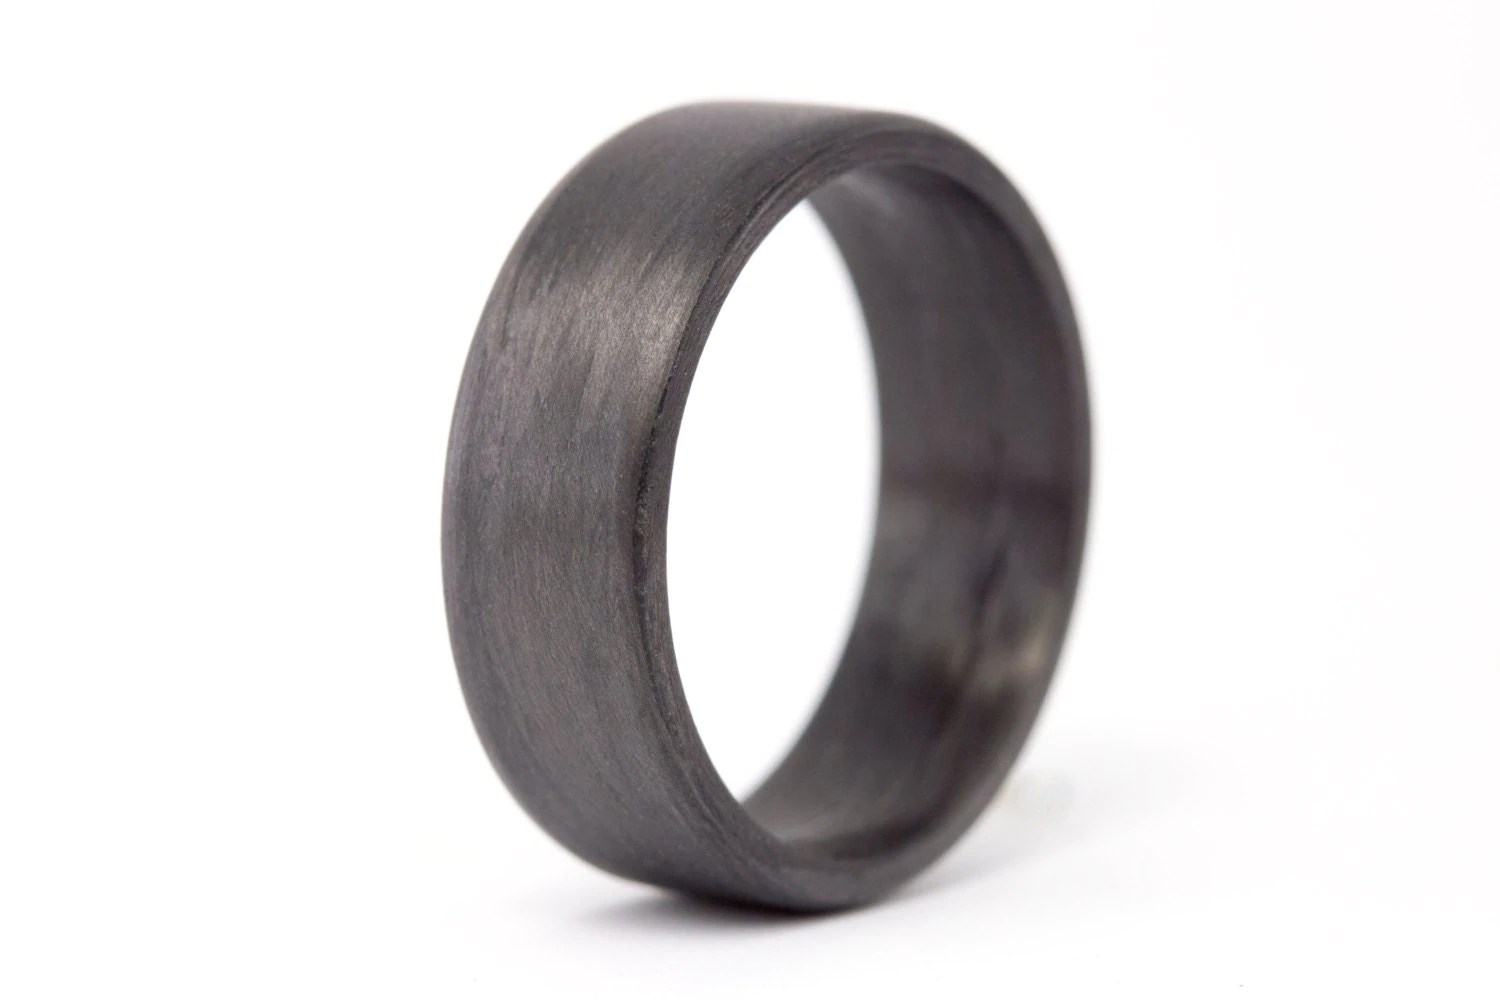 hypoallergenic rings police wedding bands Men s carbon fiber flat ring Unique and instrial black wedding band Water resistant very durable and hypoallergenic 7N